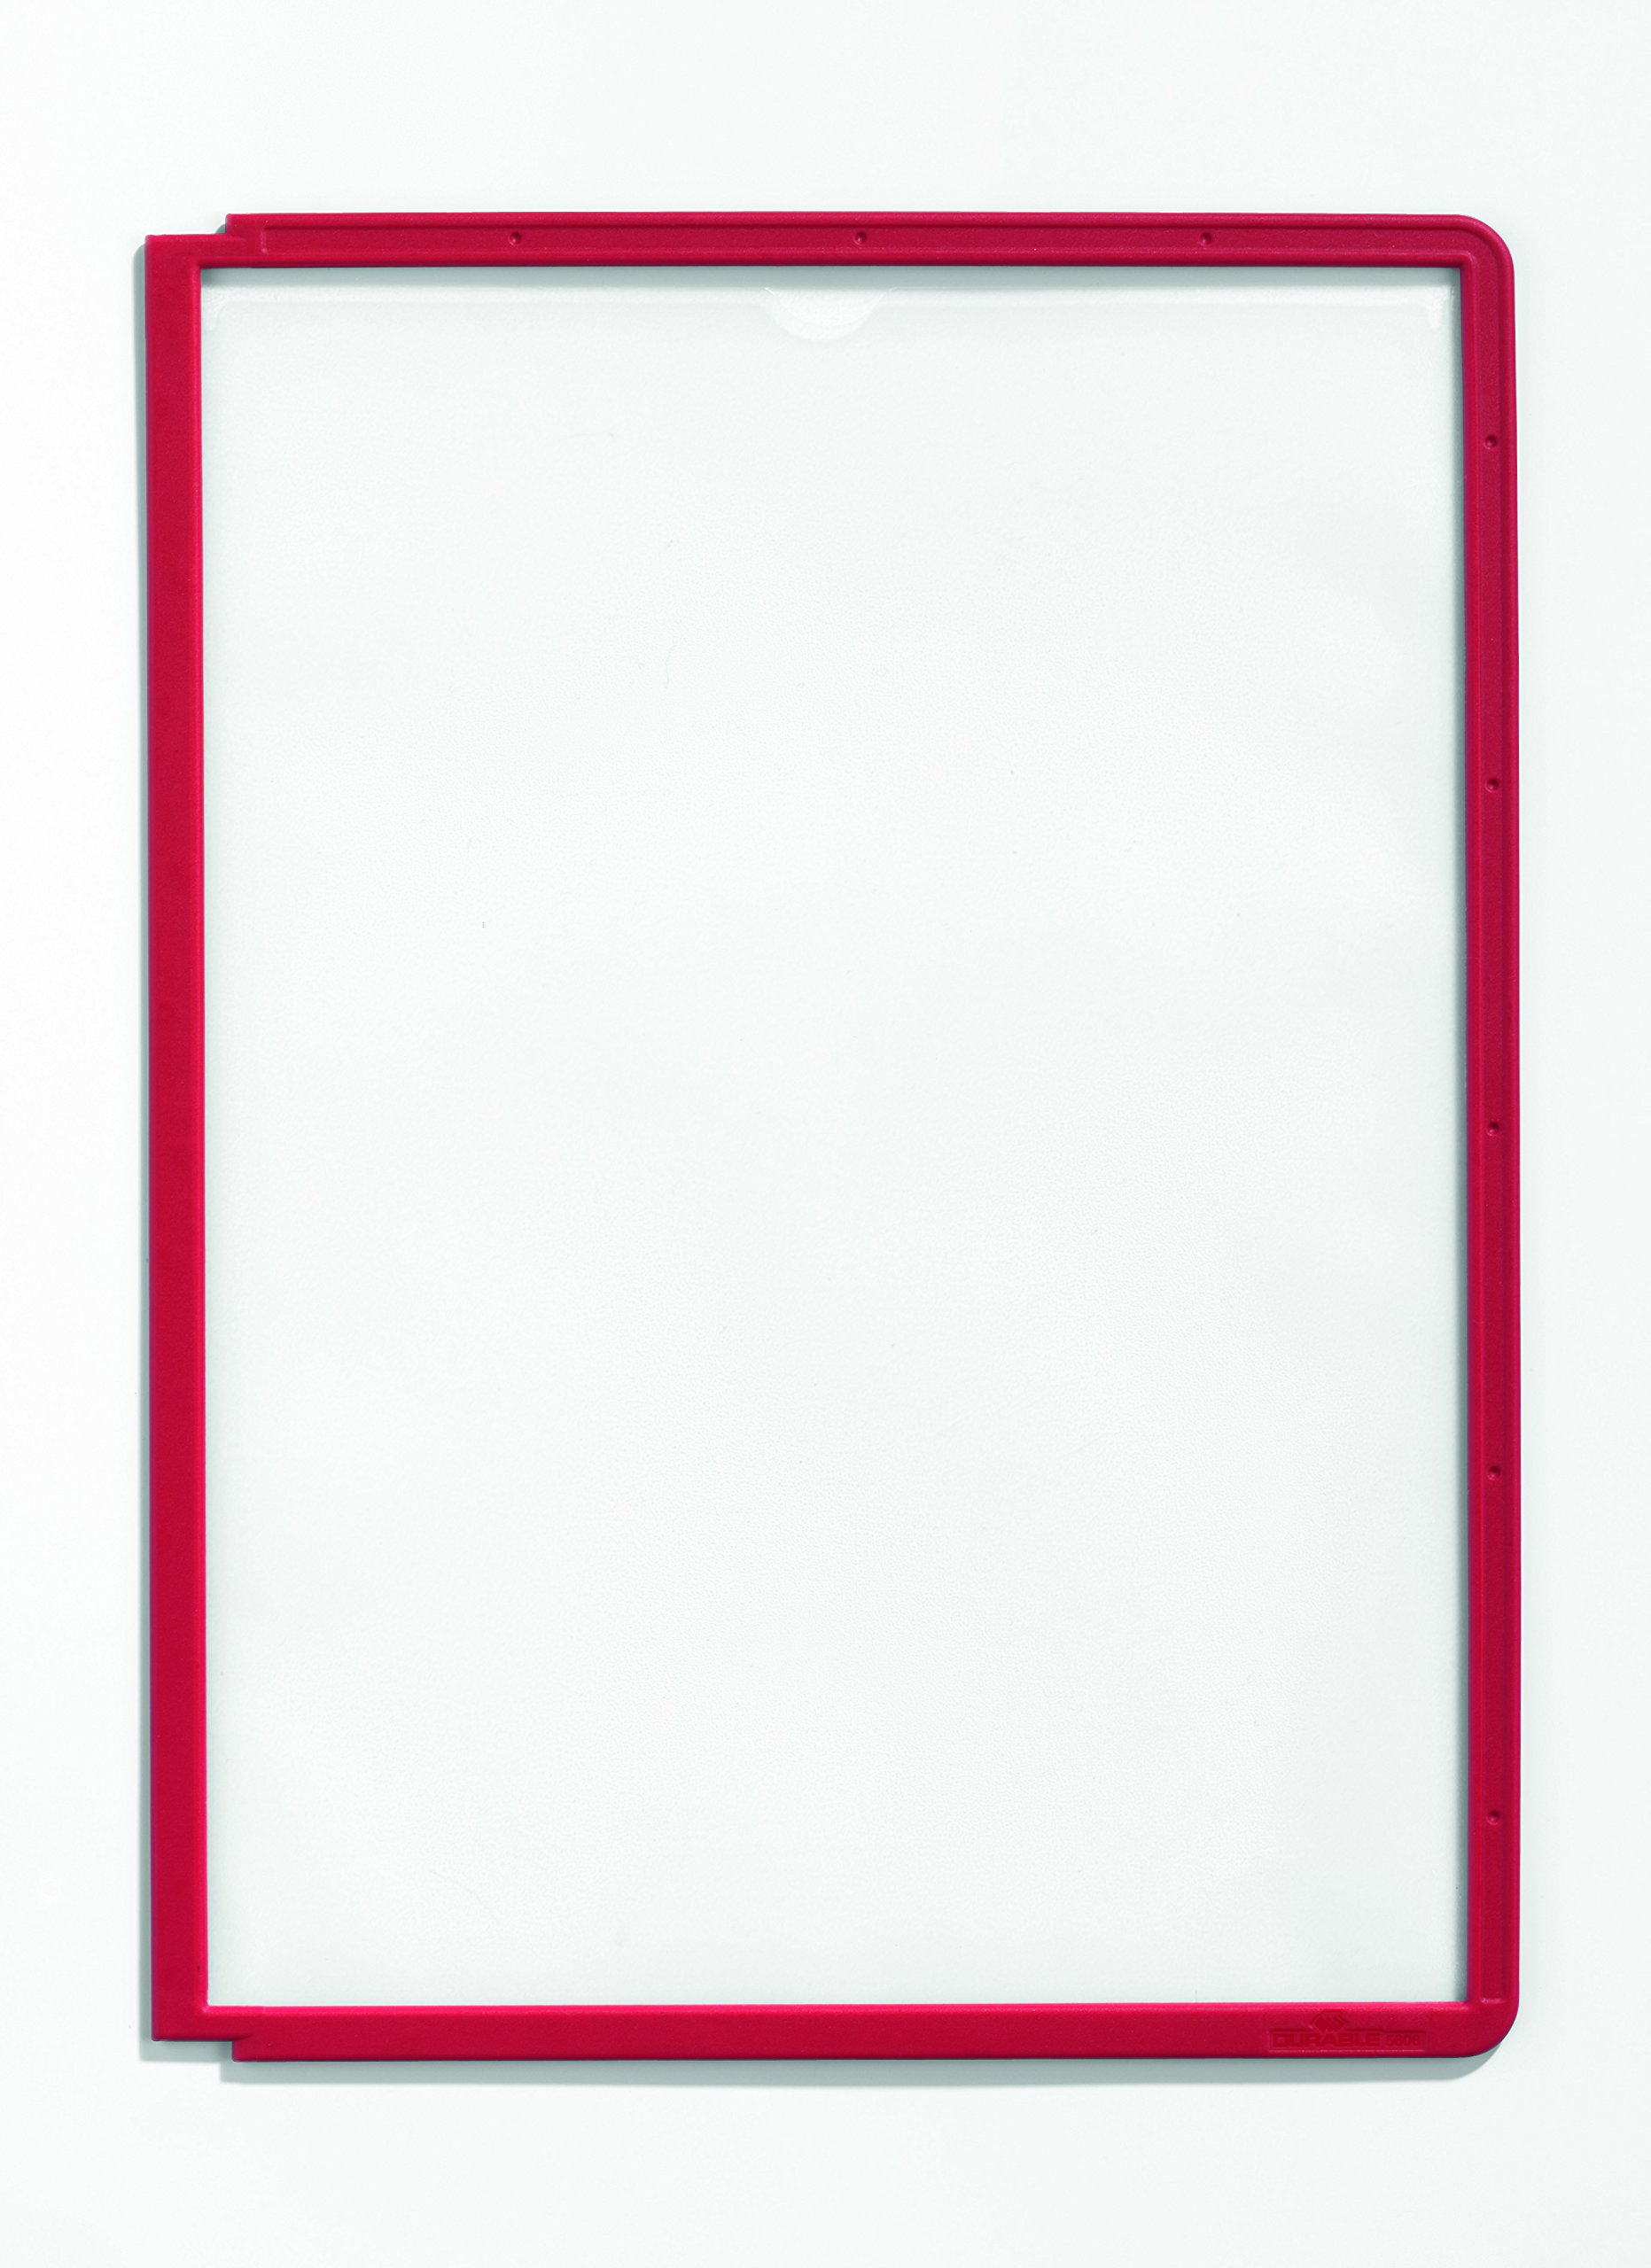 DURABLE SHERPA Replacement Panels, Red, 5-Pack (566603)